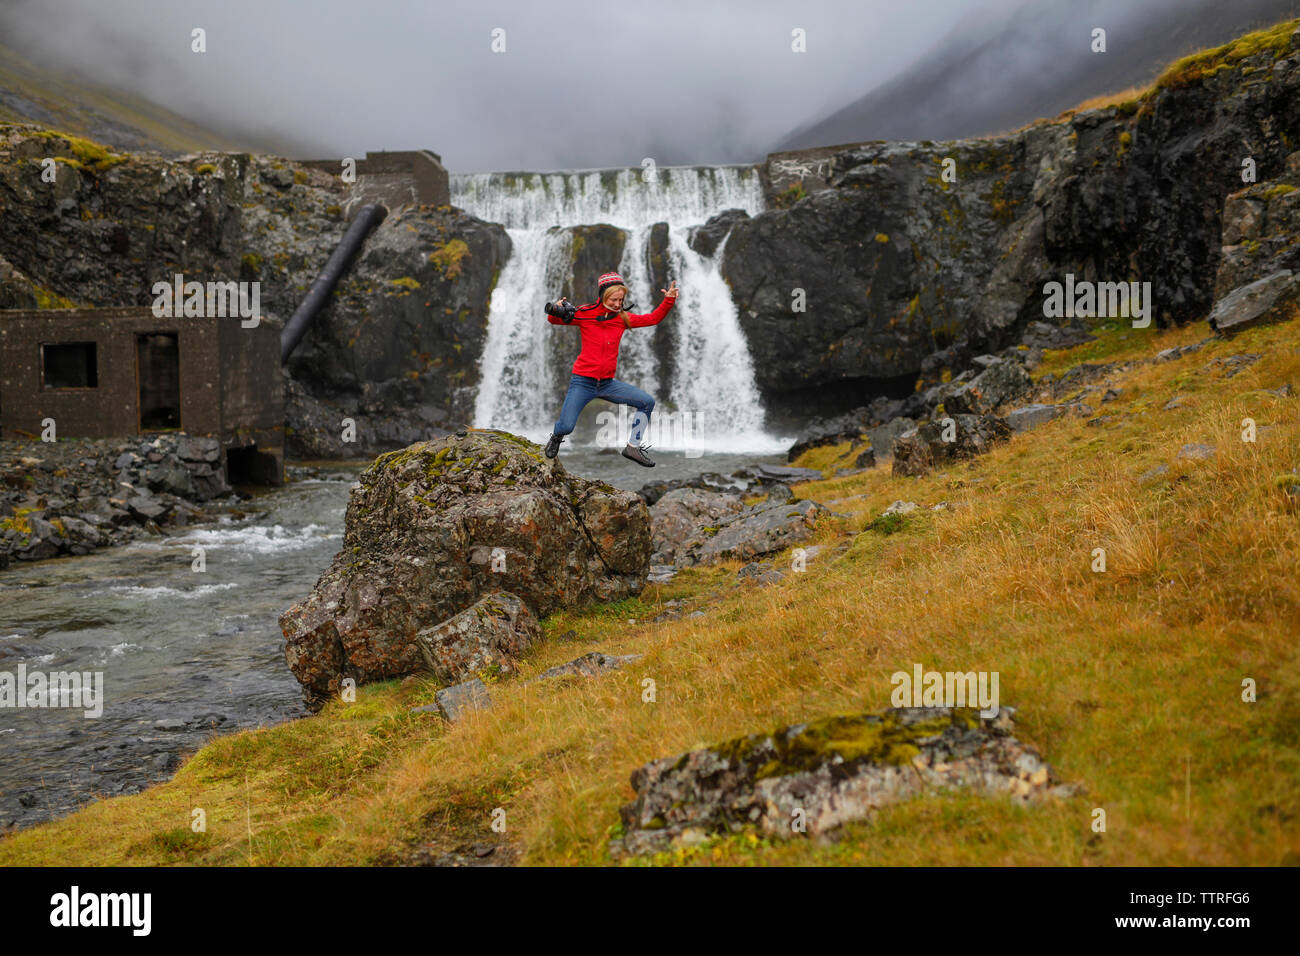 Excited female hiker jumping from rock against waterfall - Stock Image